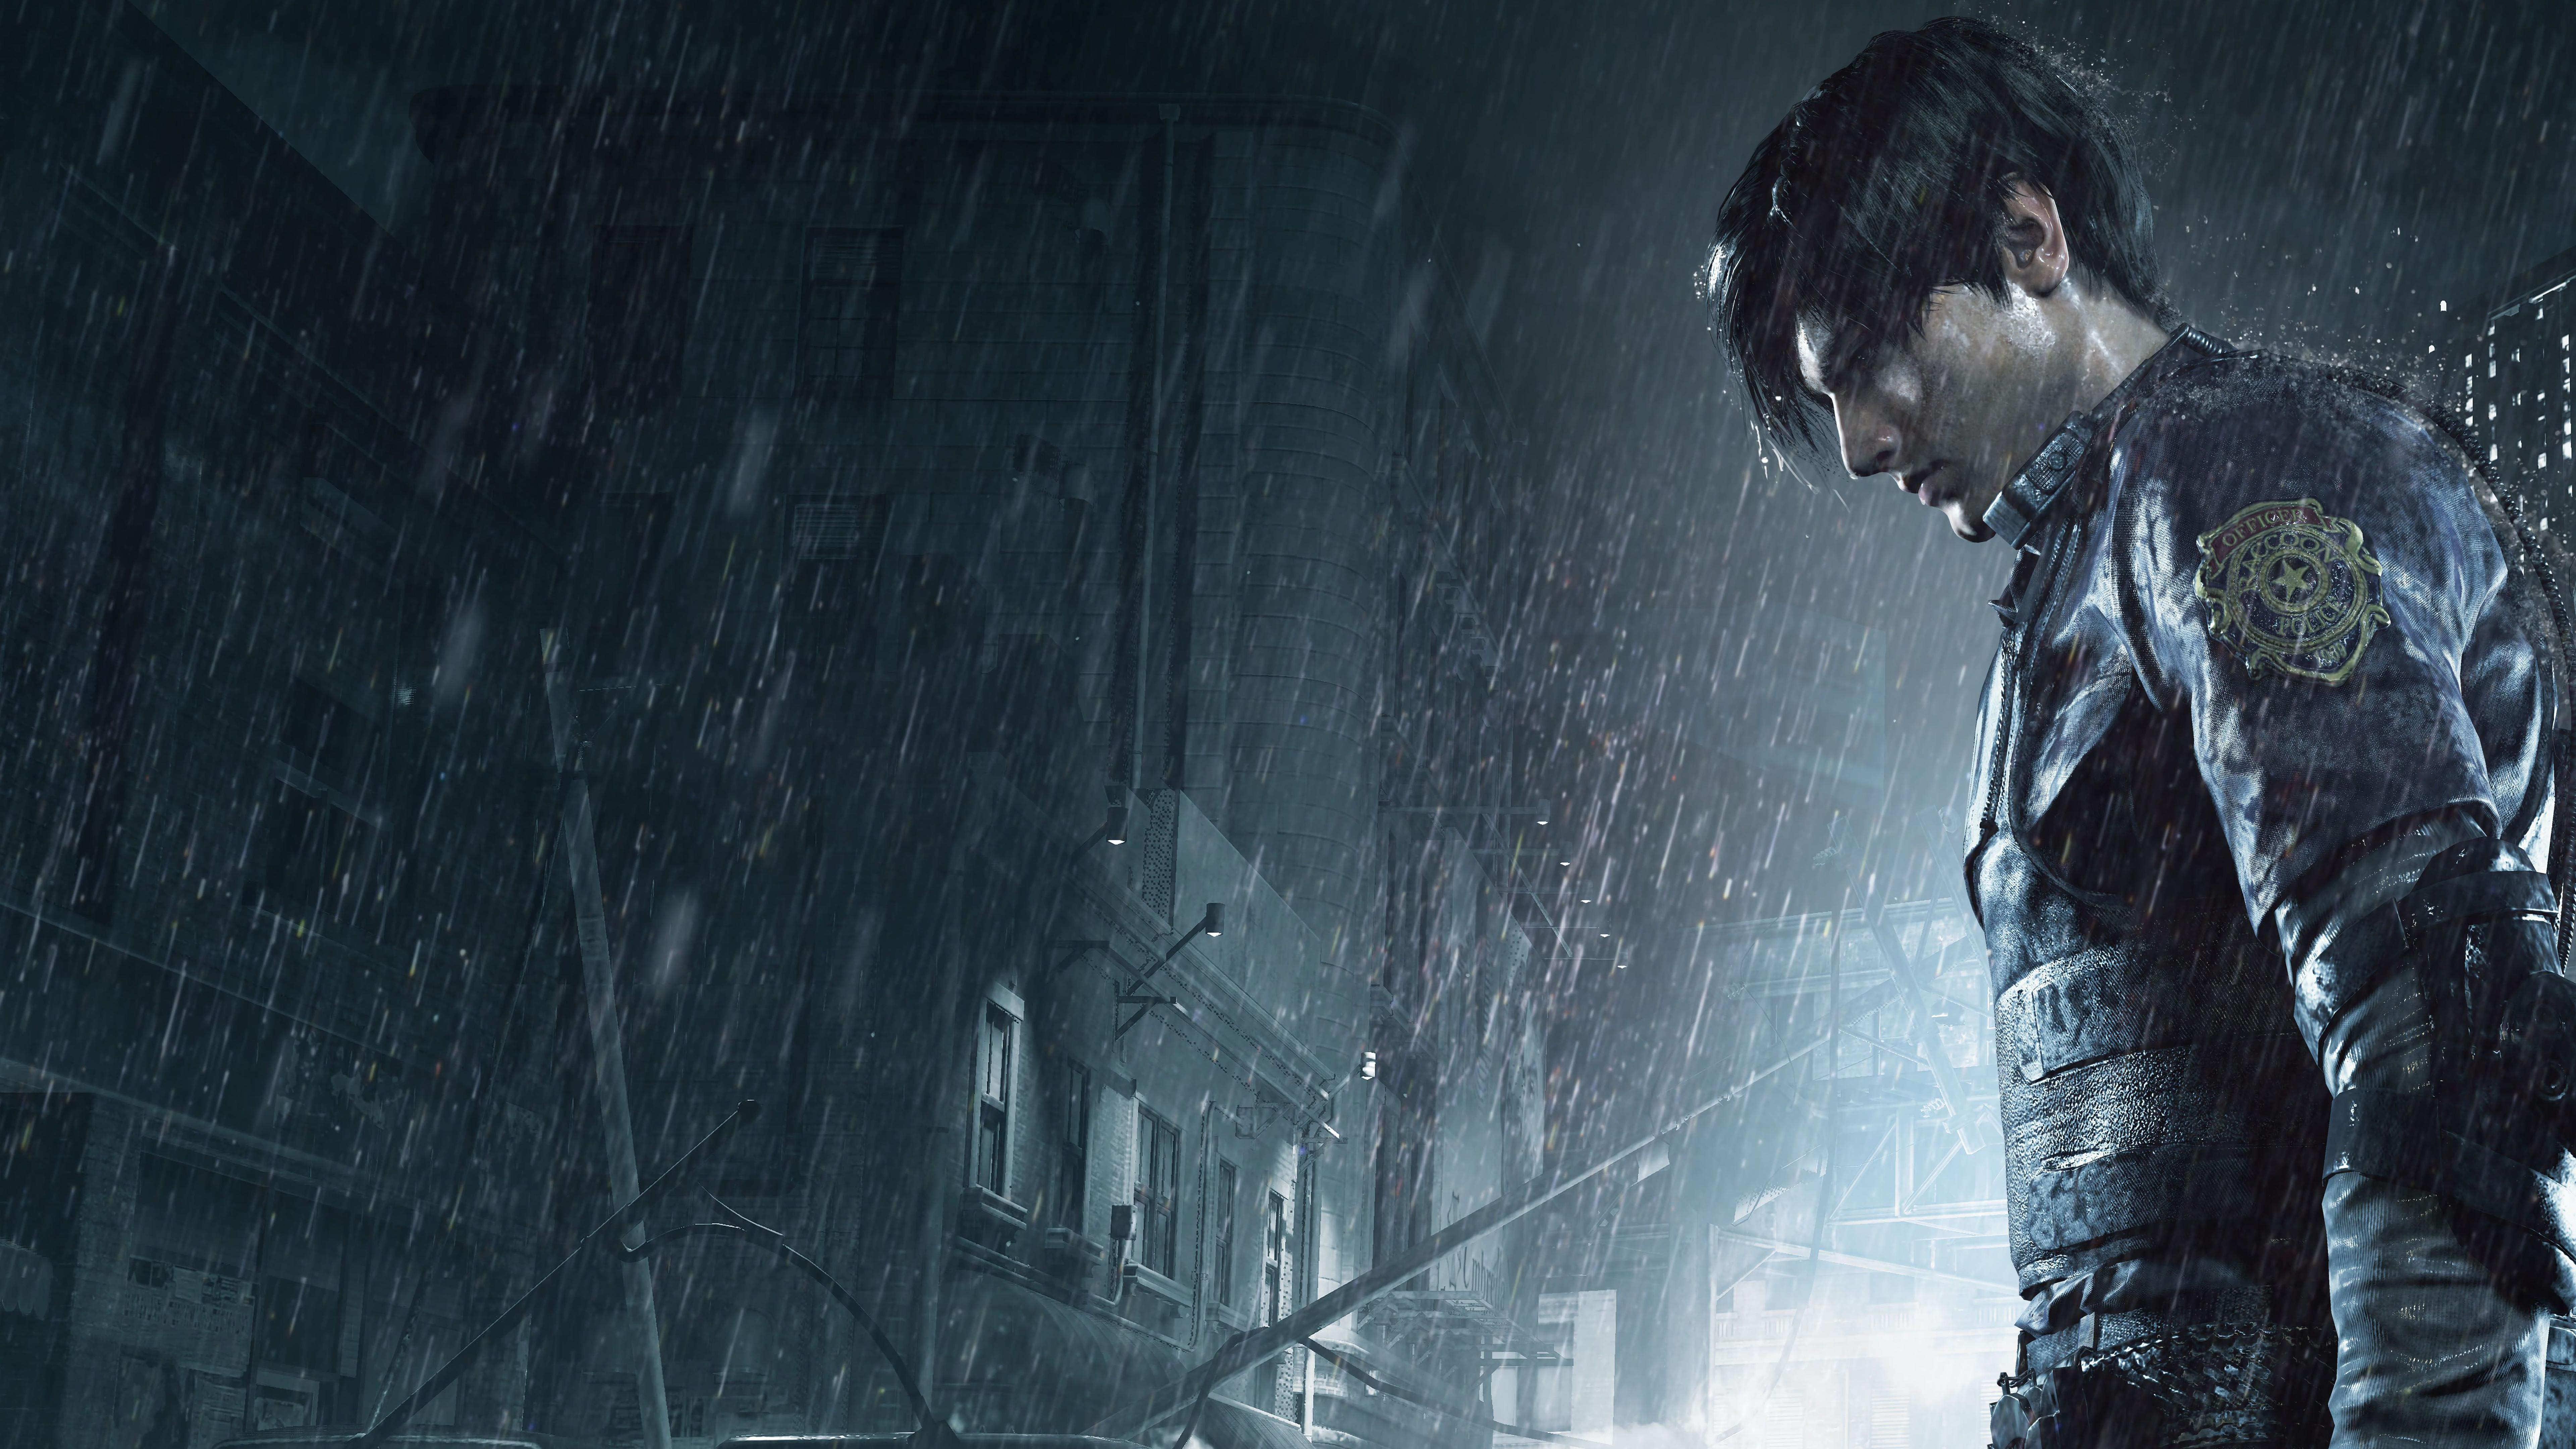 Leon Kennedy Resident Evil 2 Wallpapers Wallpaper Cave